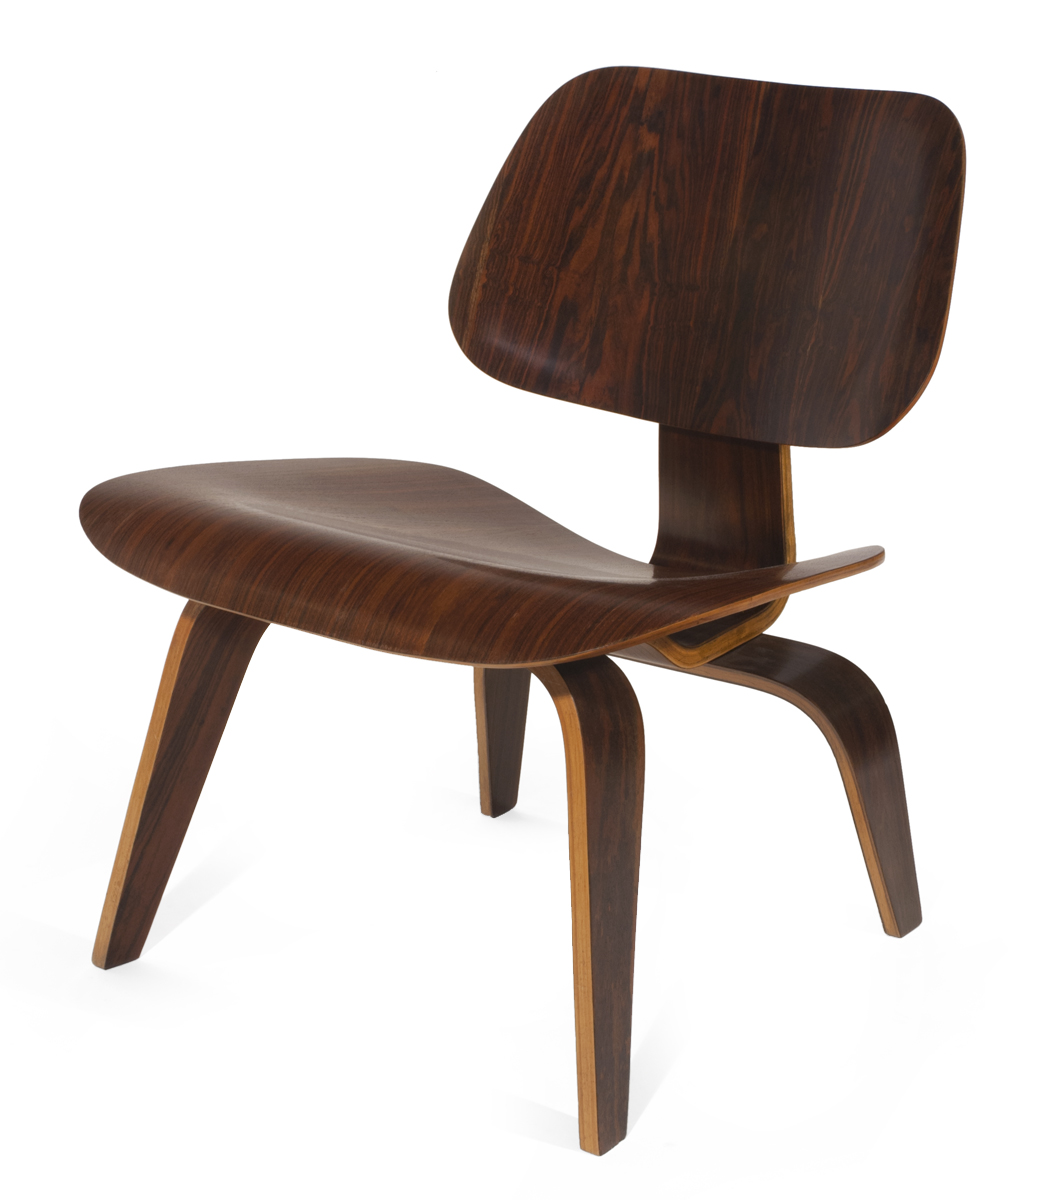 LCW (Lounge Chair Wood)